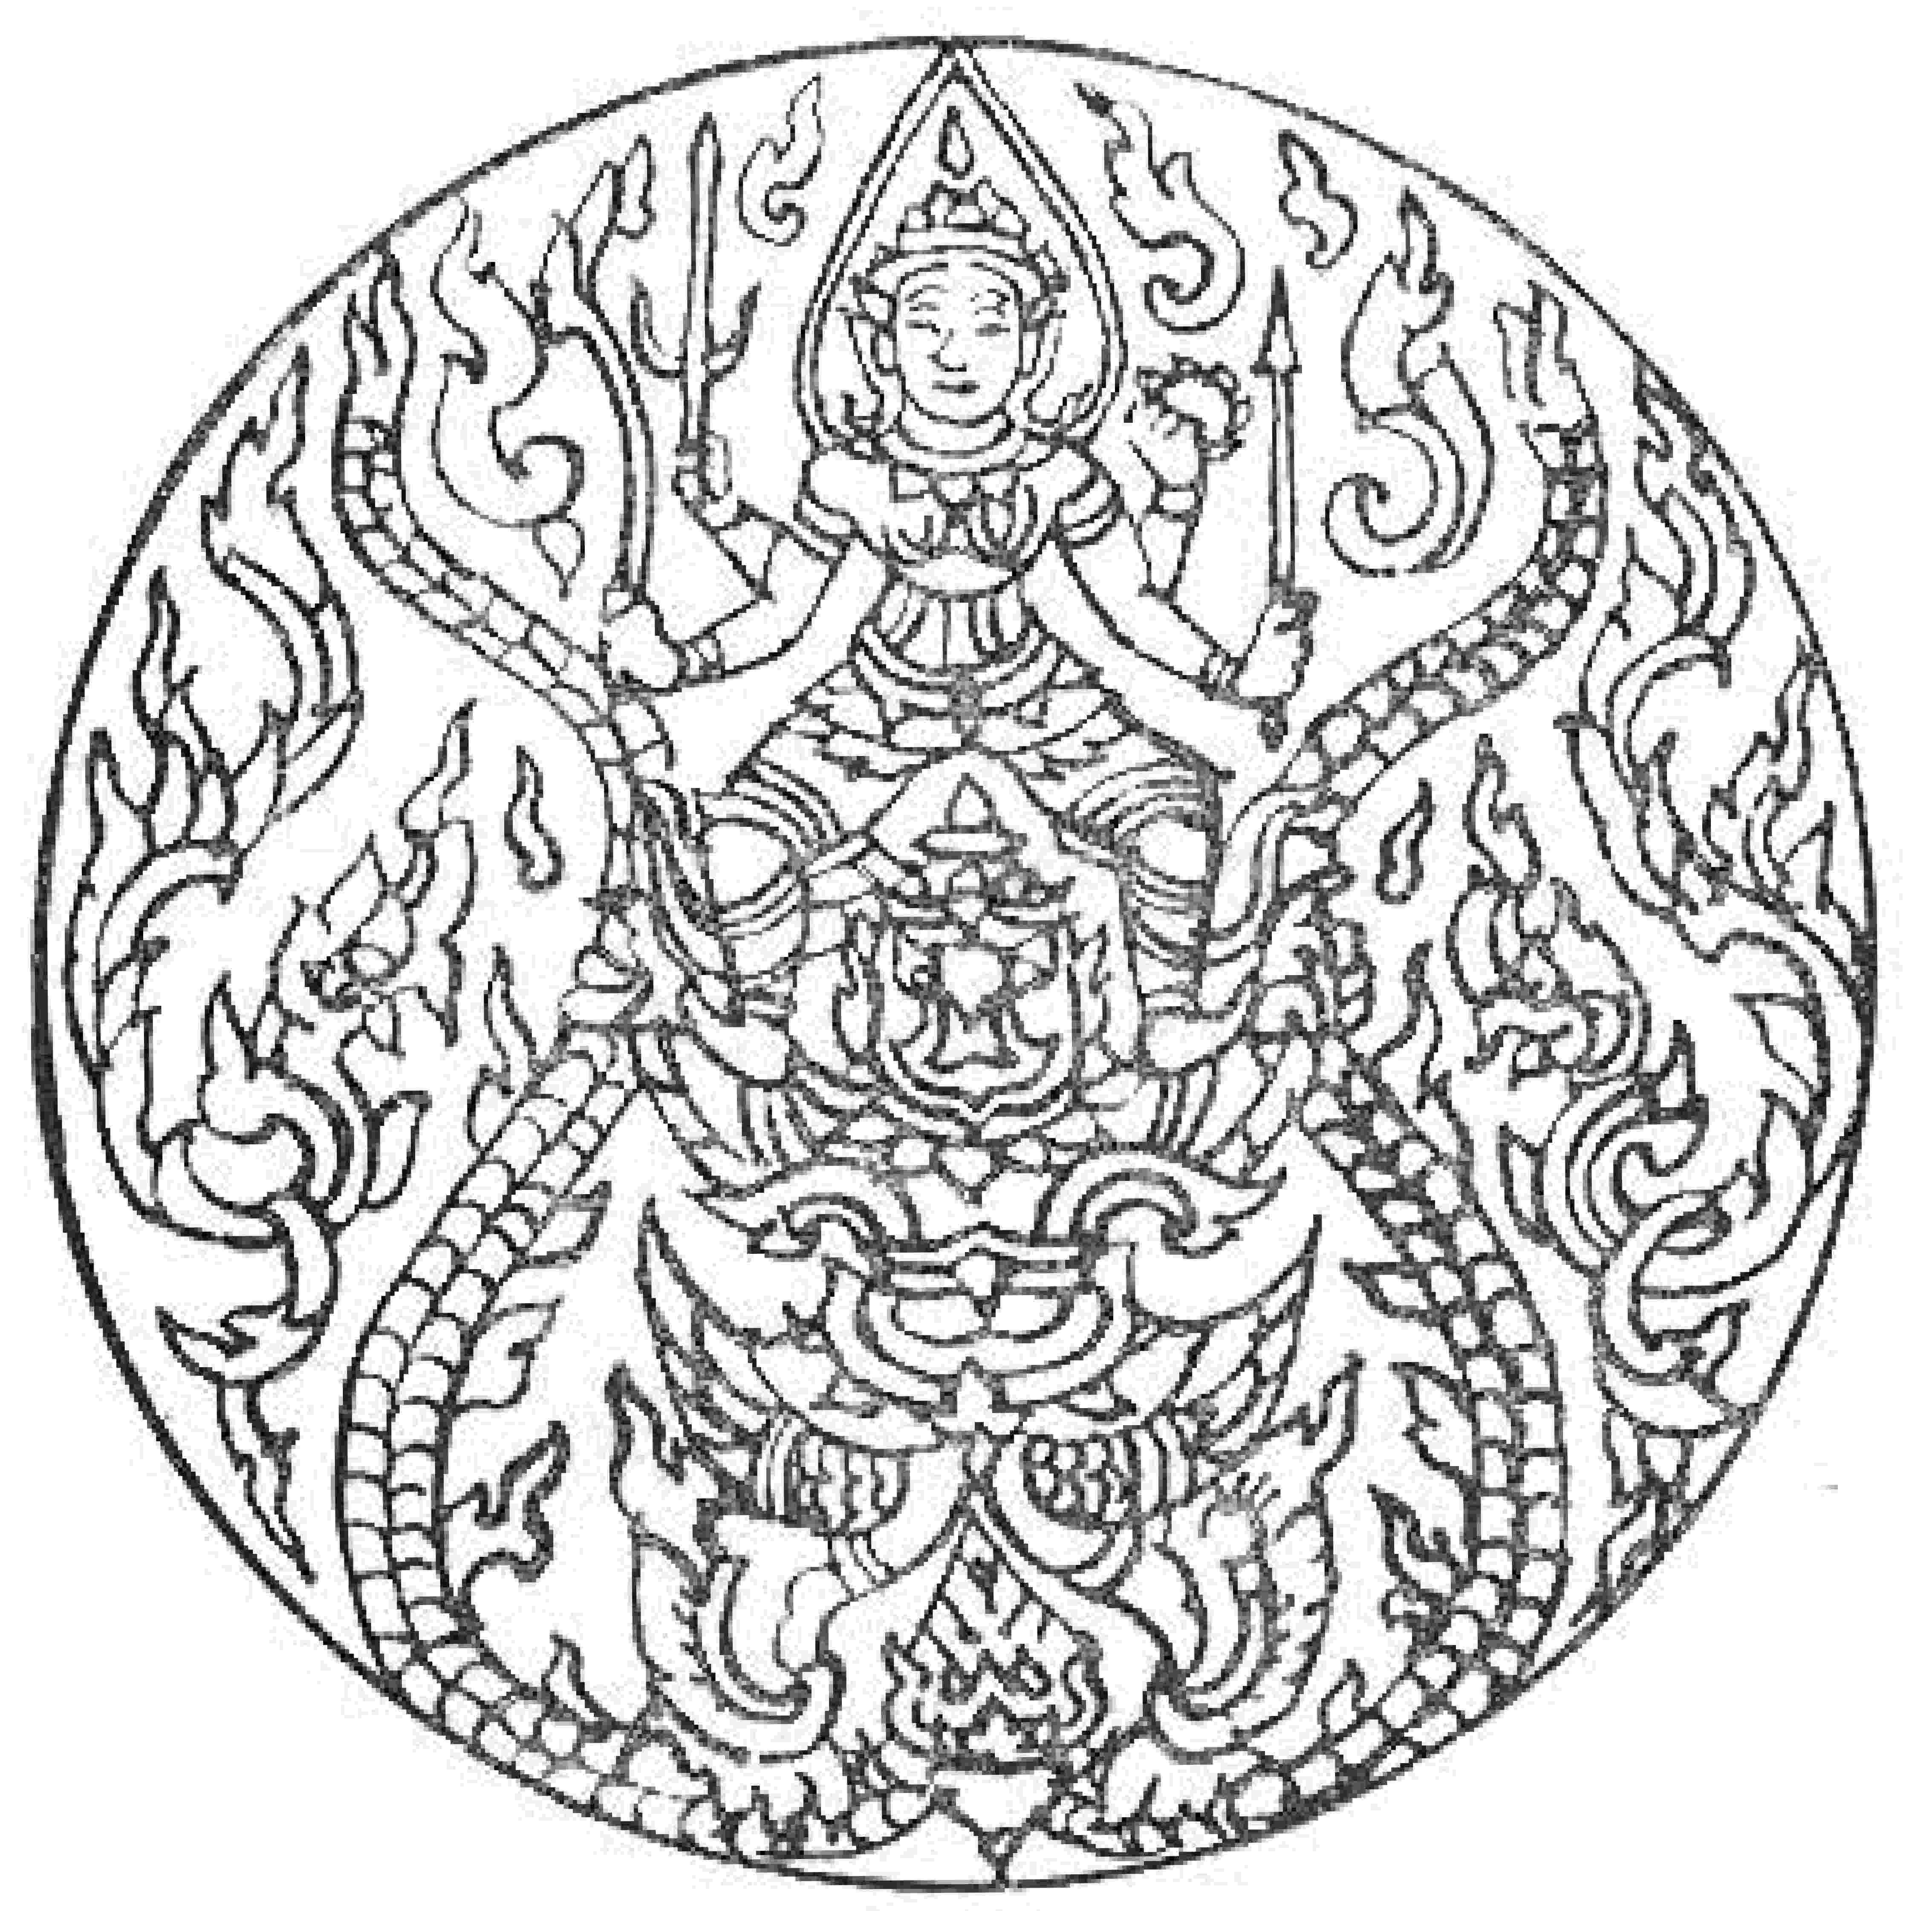 mandala coloring pages for adults free free printable mandala coloring pages for adults best mandala pages free adults coloring for